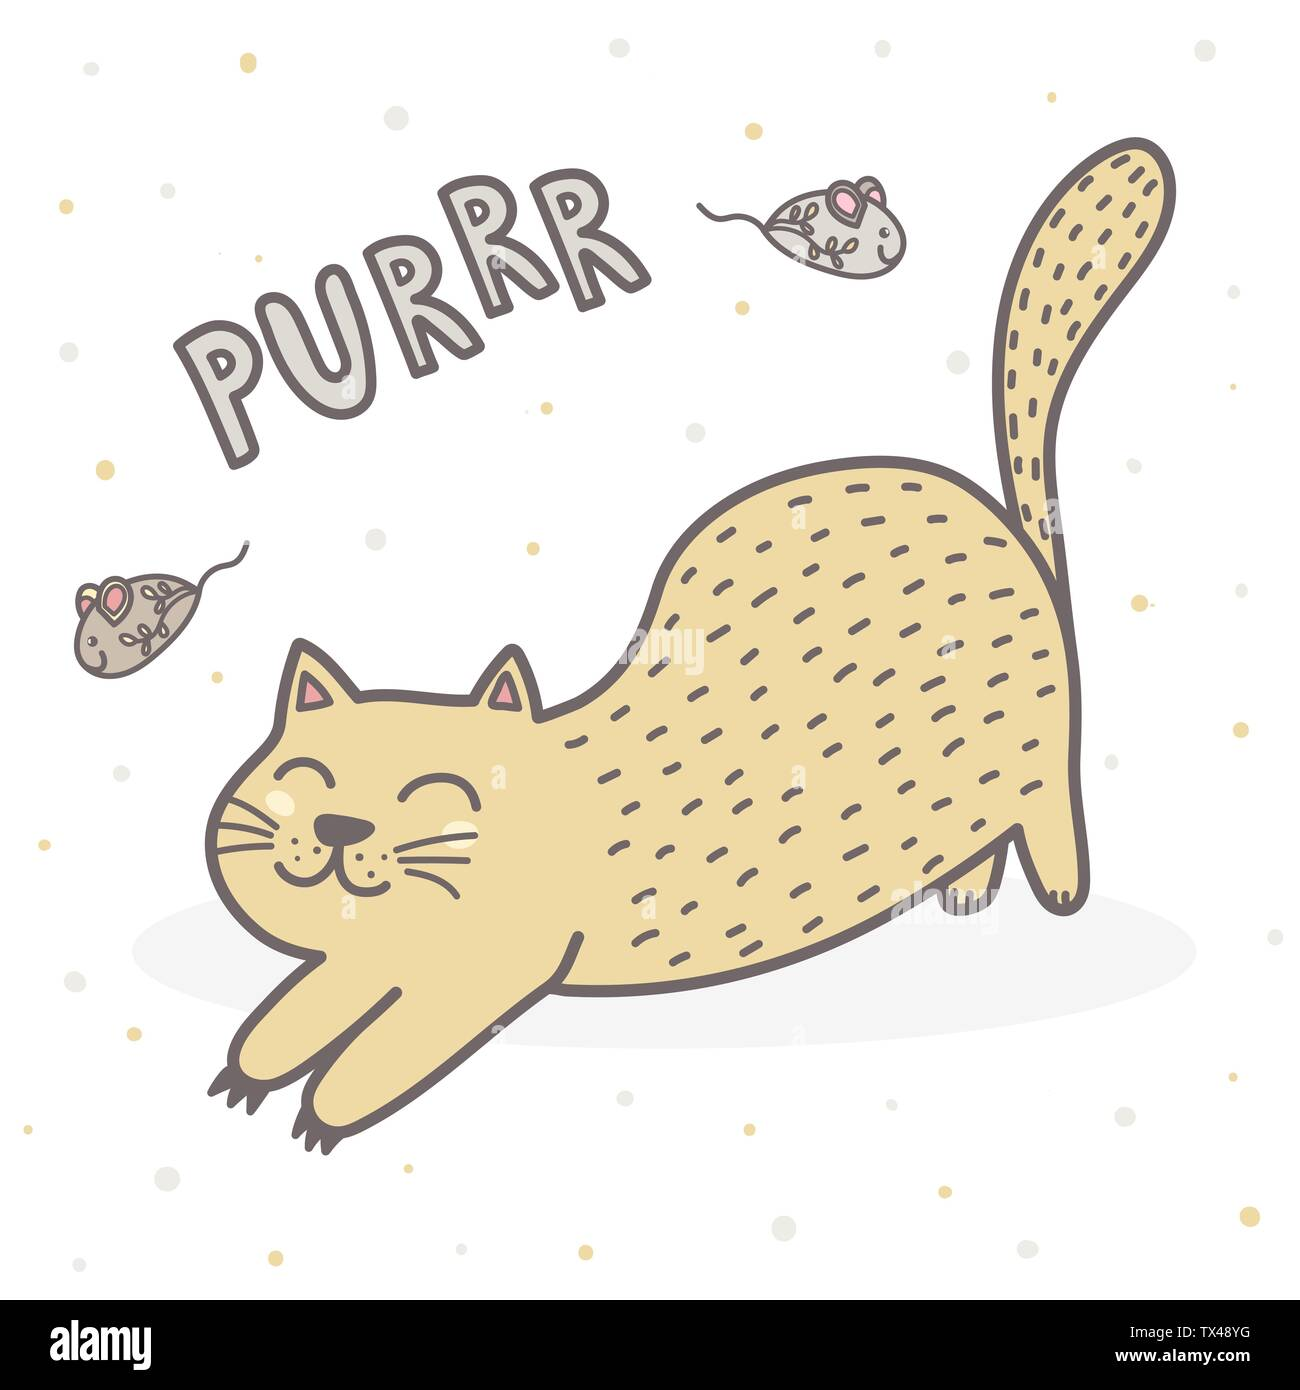 Cute Purring Cat Print Funny Card For Children Vector Illustration Stock Vector Image Art Alamy